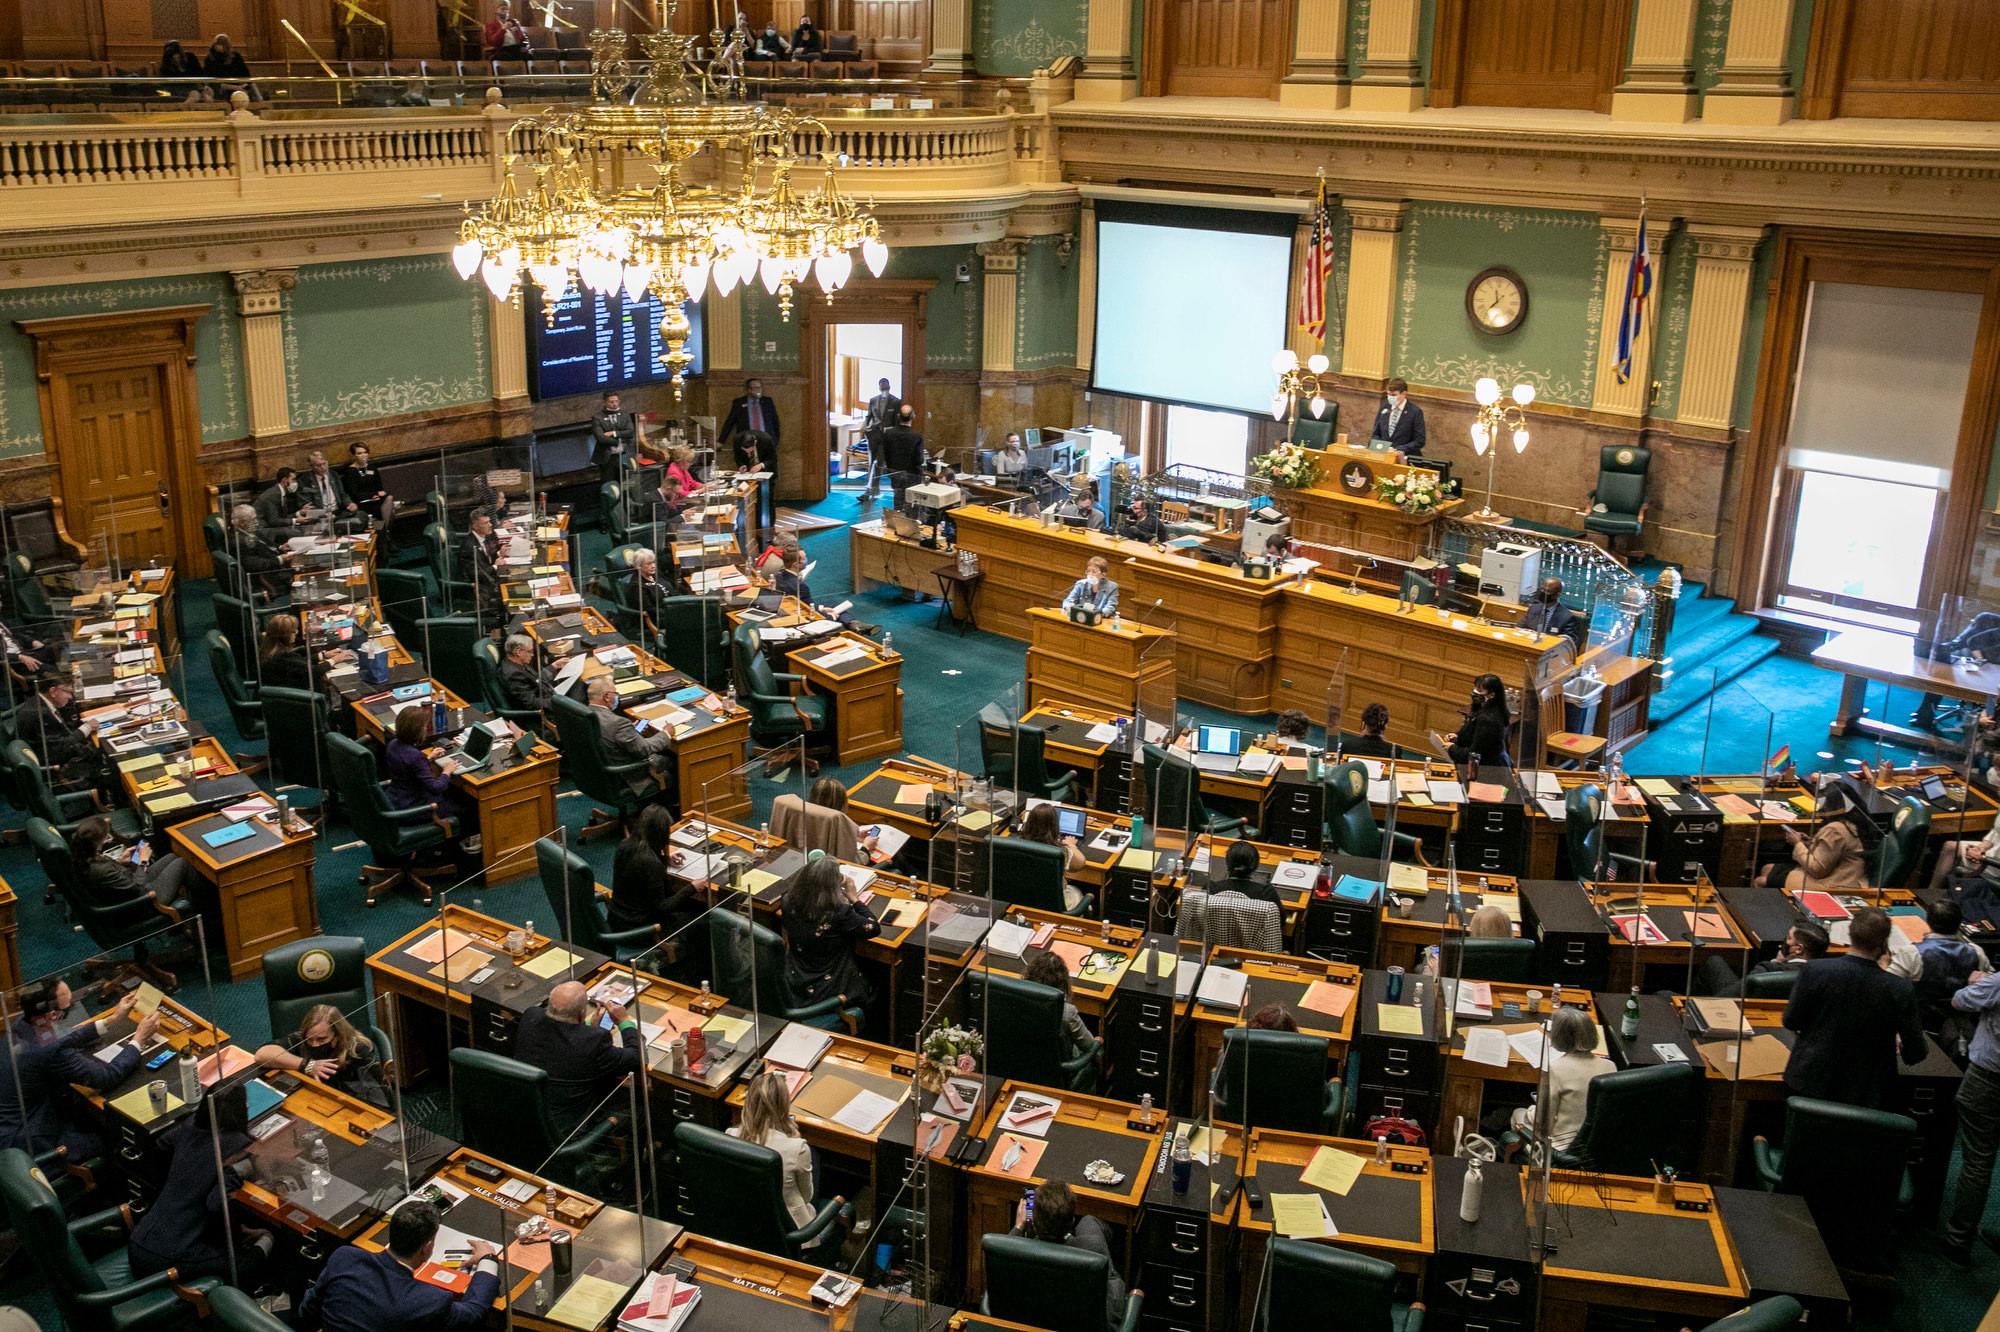 COLORADO-LEGISLATURE-OPENING-DAY-GALLERY-SHOT